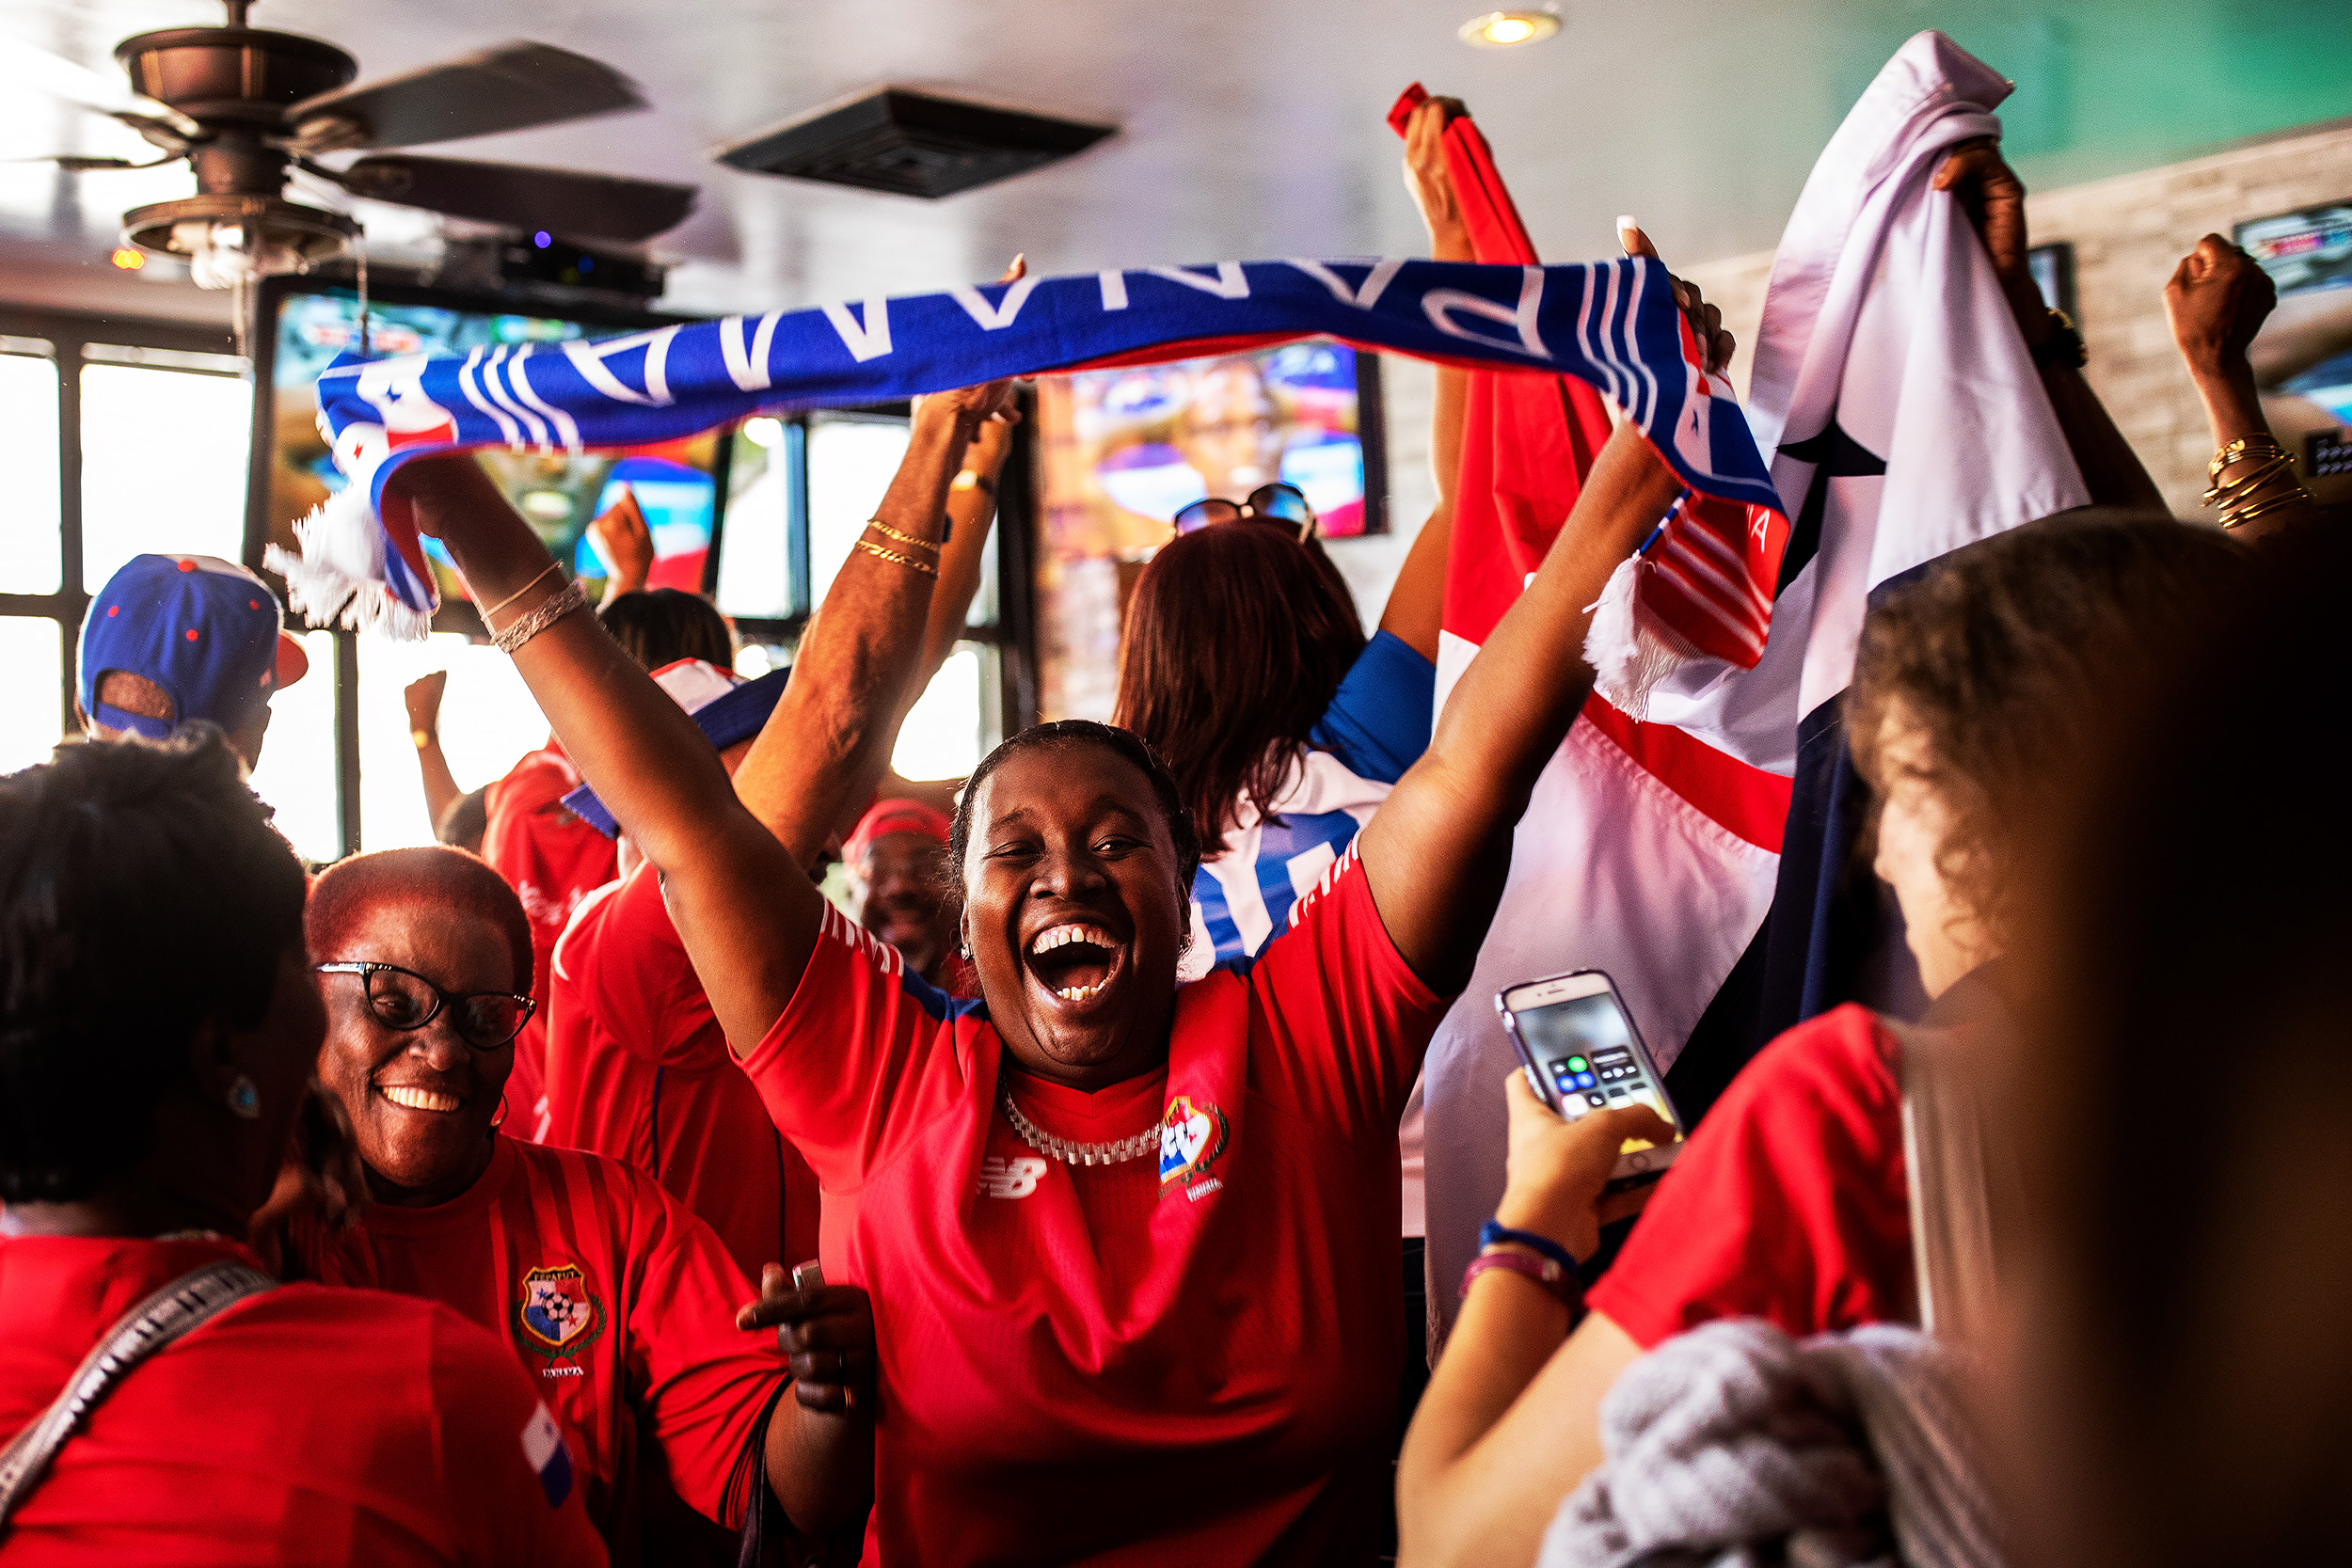 Fans celebrate Panama scoring a goal during the World Cup game between Panama and Tunisia at Michelle's, a Panamanian restaurant/bar, in Brooklyn, New York.